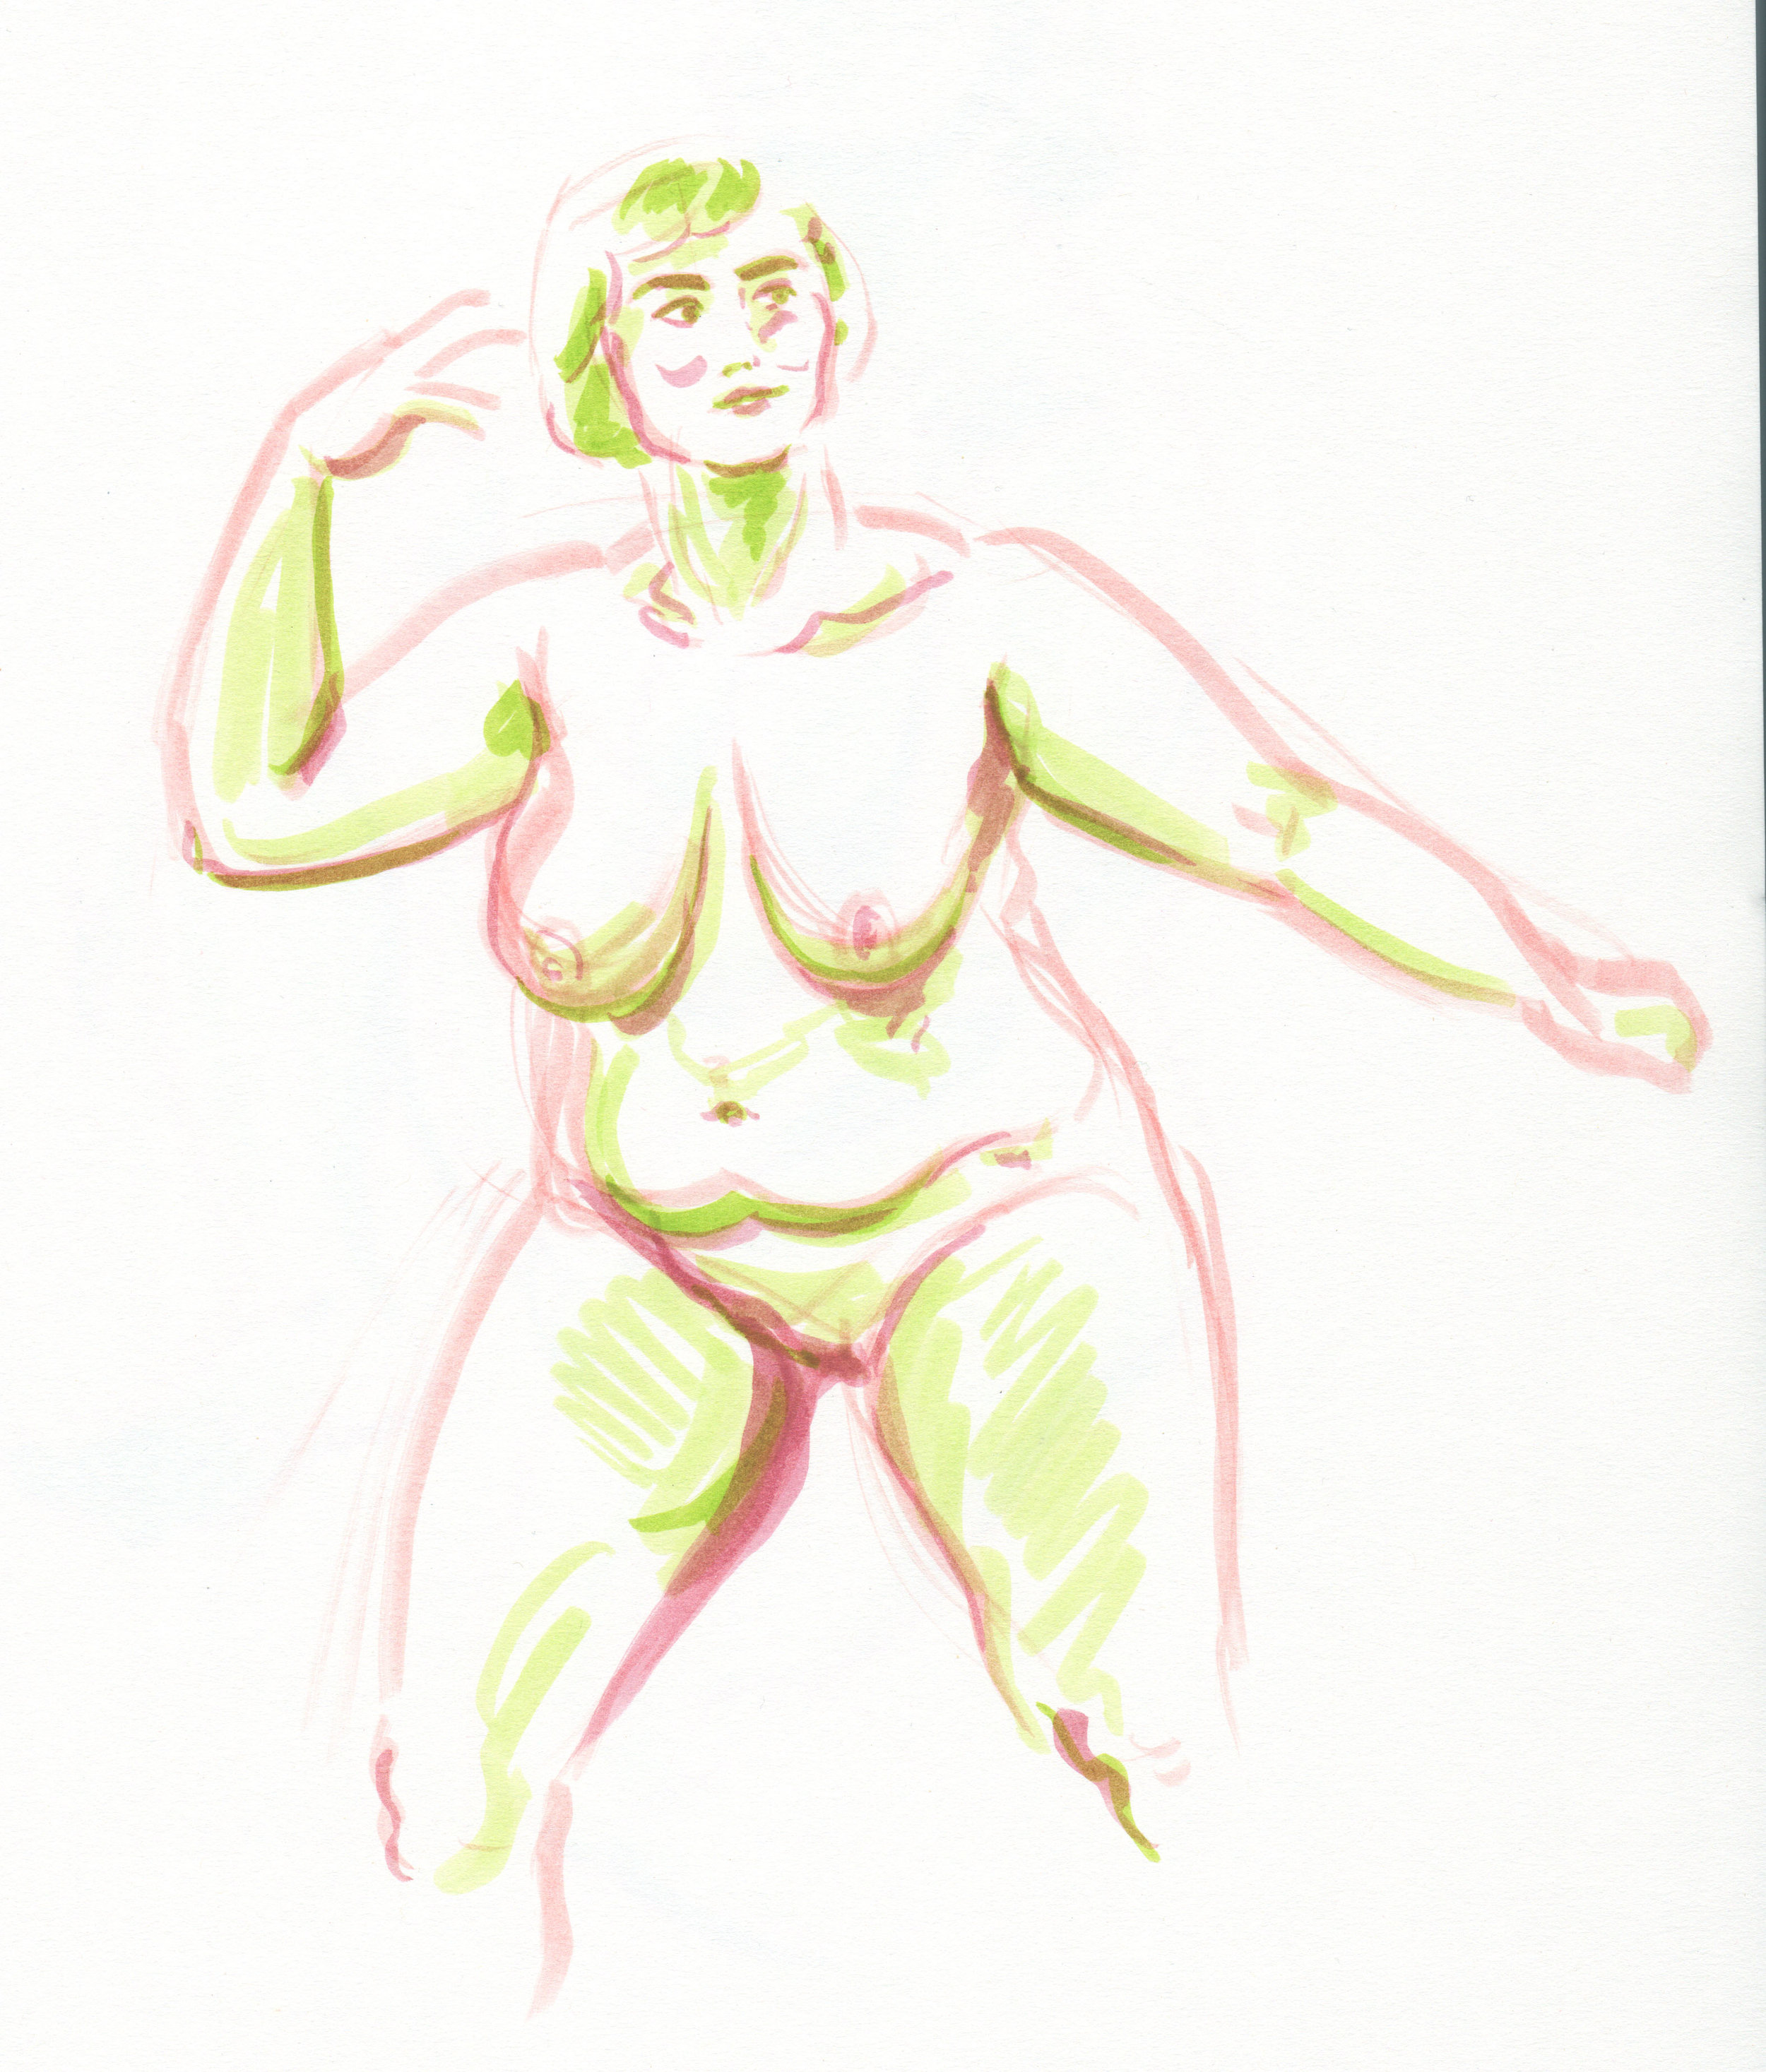 Figure drawing, 10 minute pose, 2019